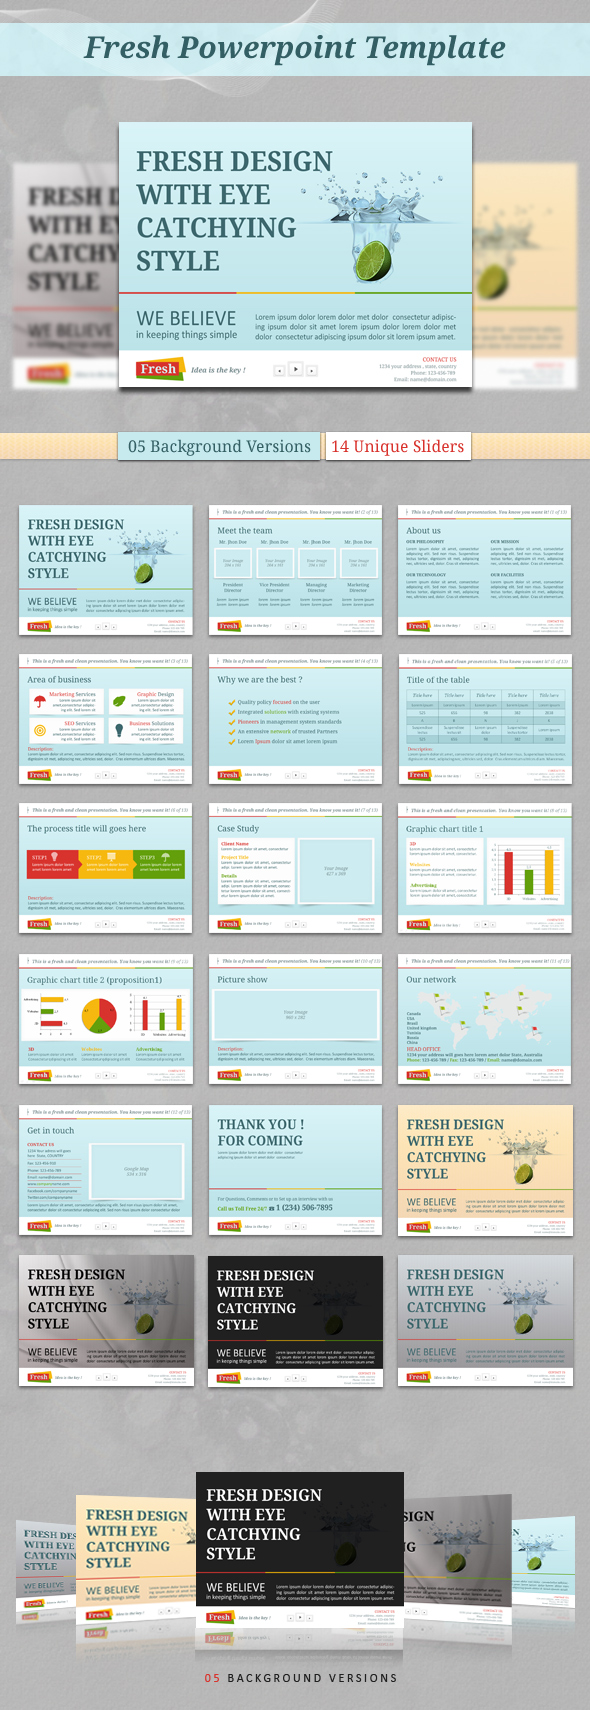 Fresh powerpoint template by kh2838 on deviantart fresh powerpoint template by kh2838 fresh powerpoint template by kh2838 toneelgroepblik Image collections